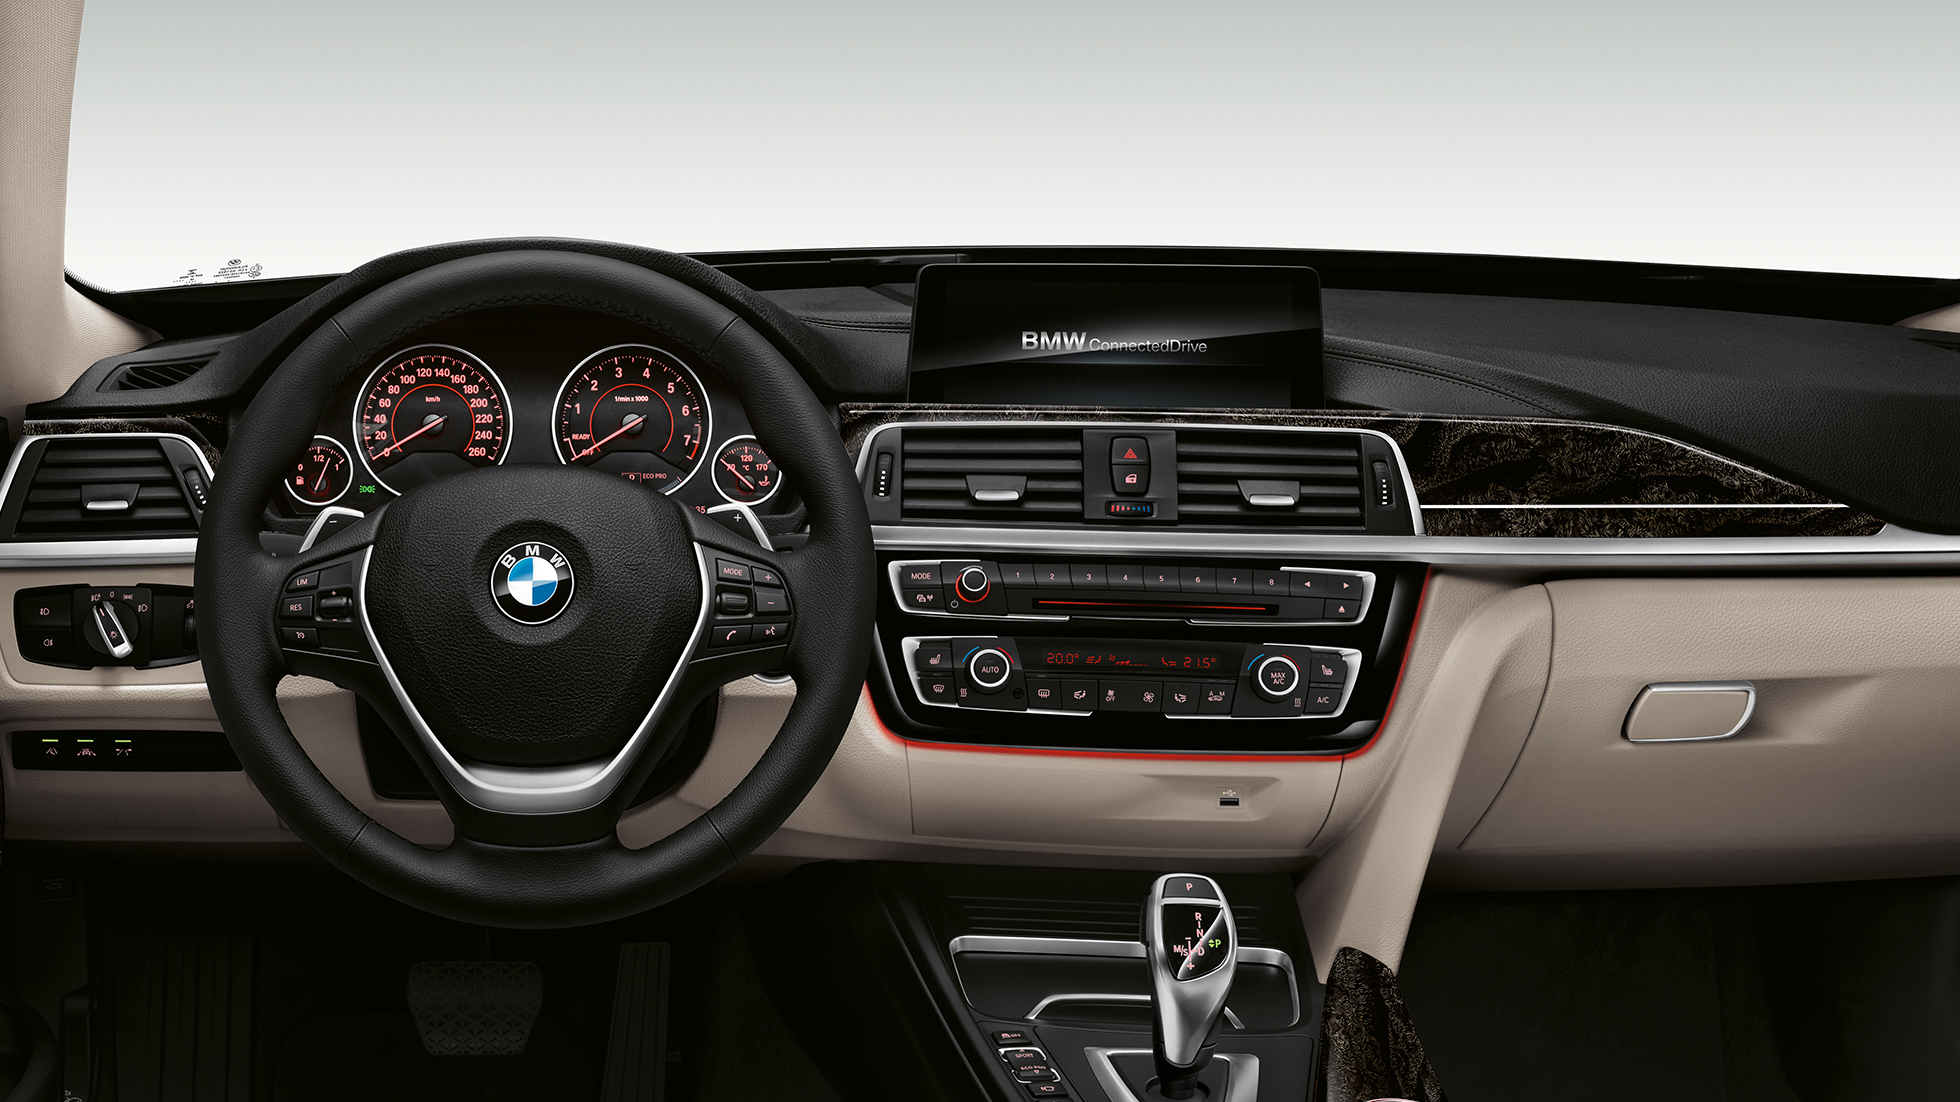 BMW 3 Series Gran Turismo, Model Sport Line seats